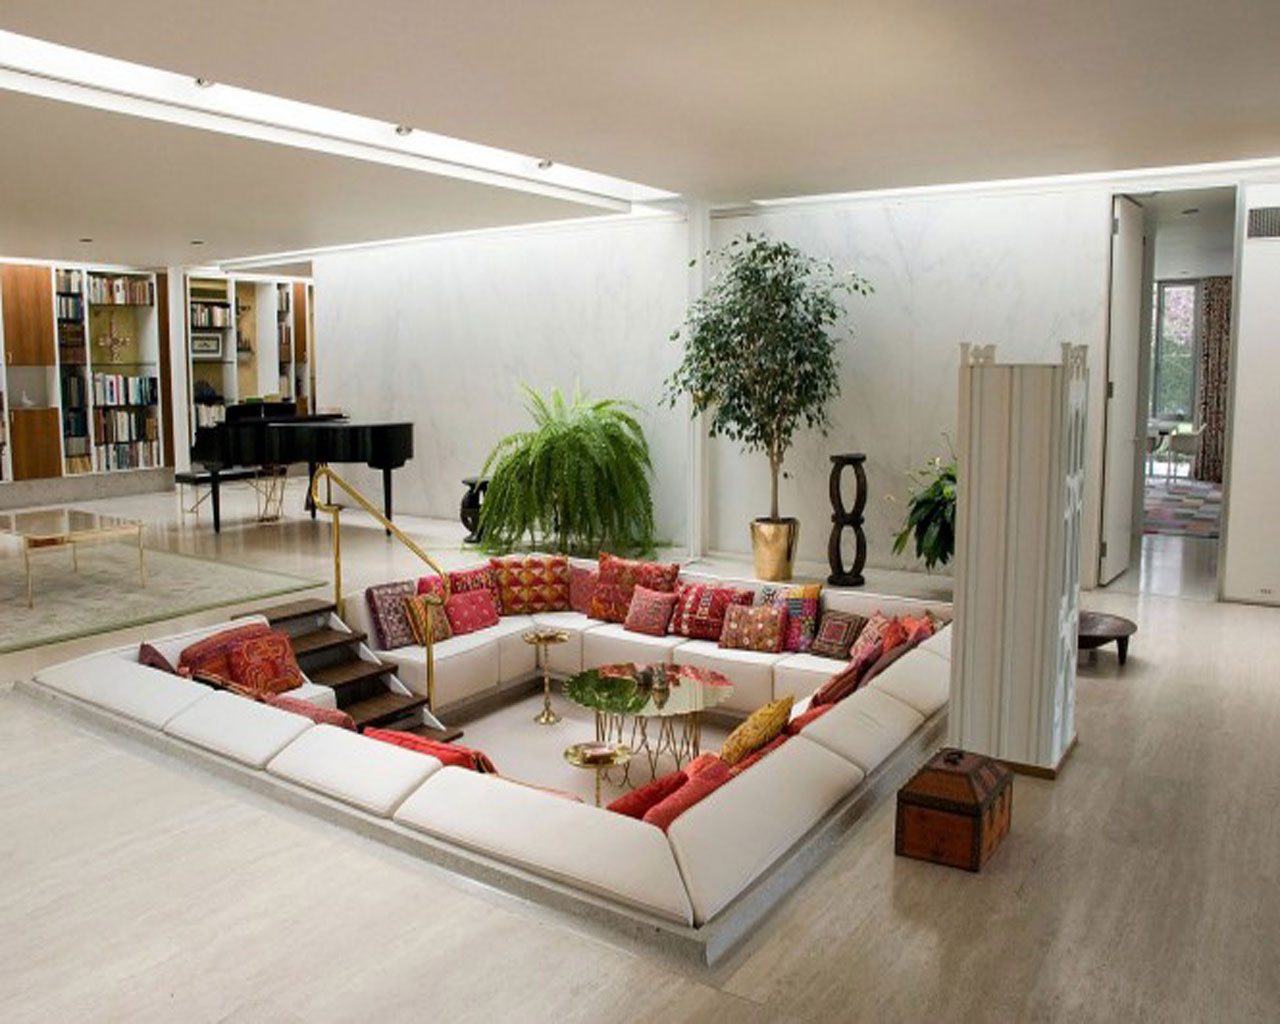 How can i apply feng shui principles to decorate my living for Decorate my family room